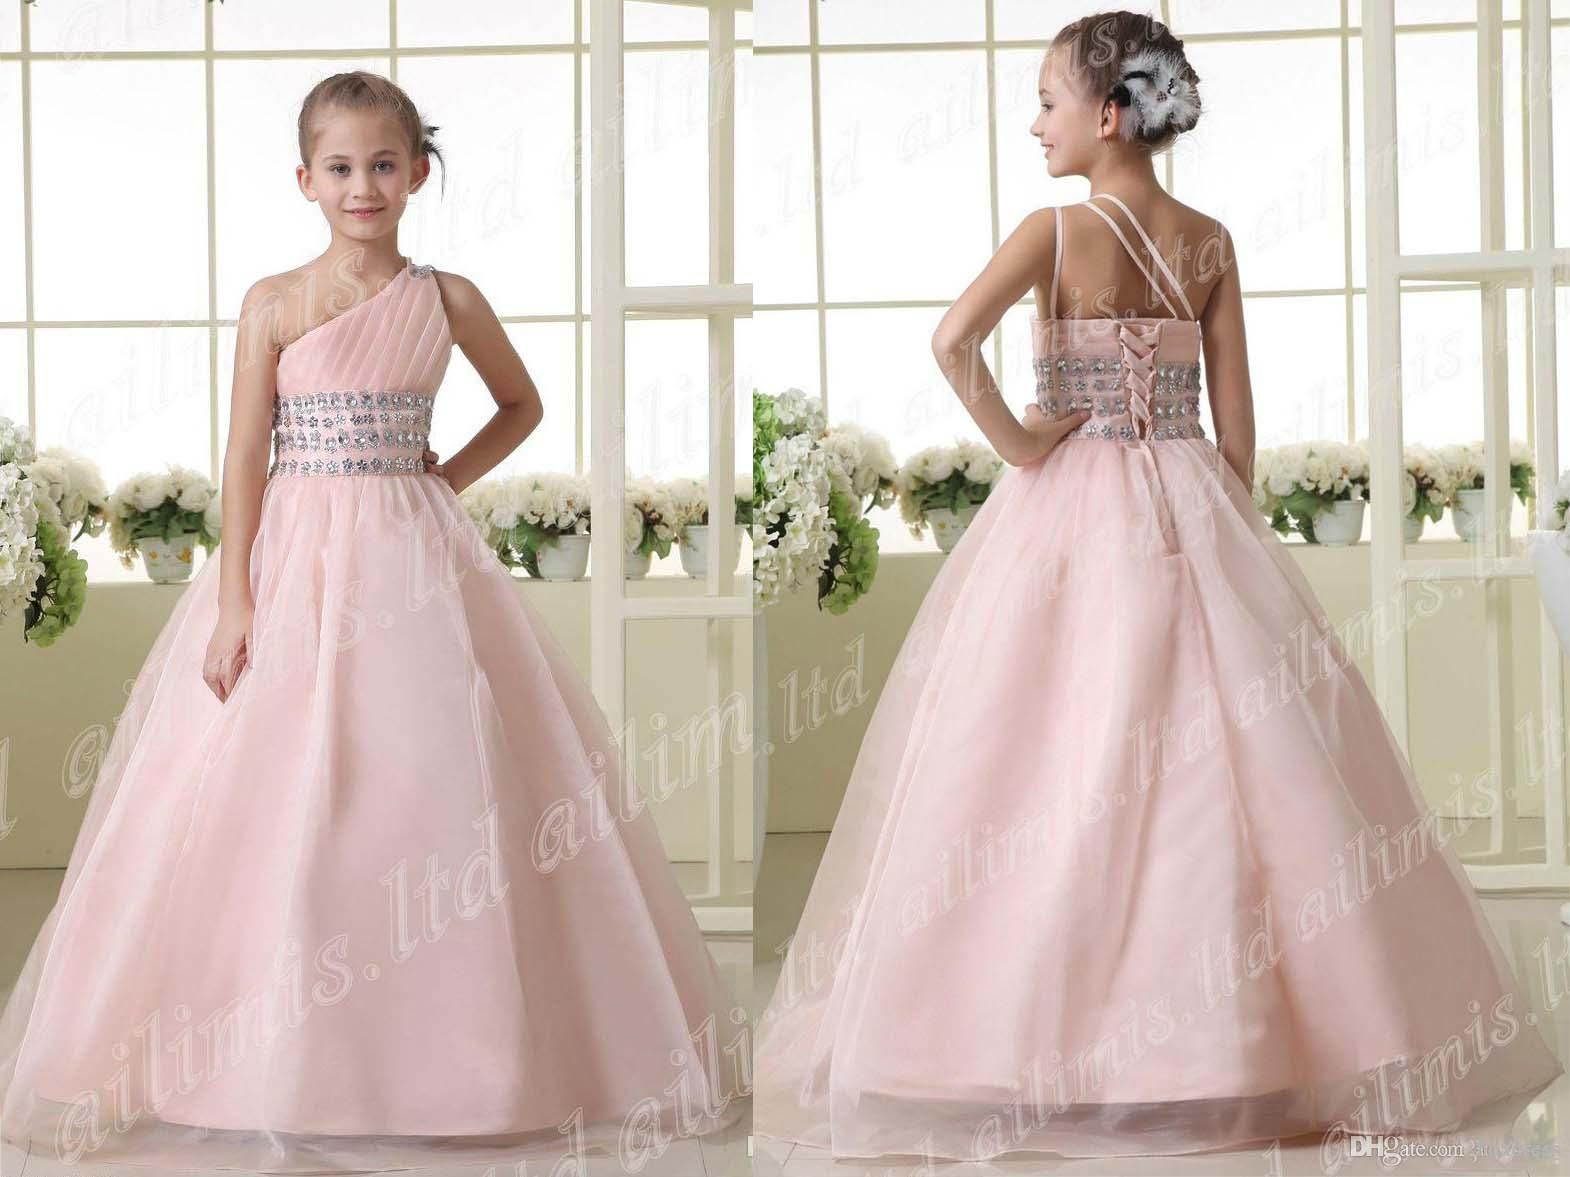 Pink flower girl dresses kids wedding dresses one shoulder sweep pink flower girl dresses kids wedding dresses one shoulder sweep train princess gowns girls pageant prom dresses ombrellifo Gallery